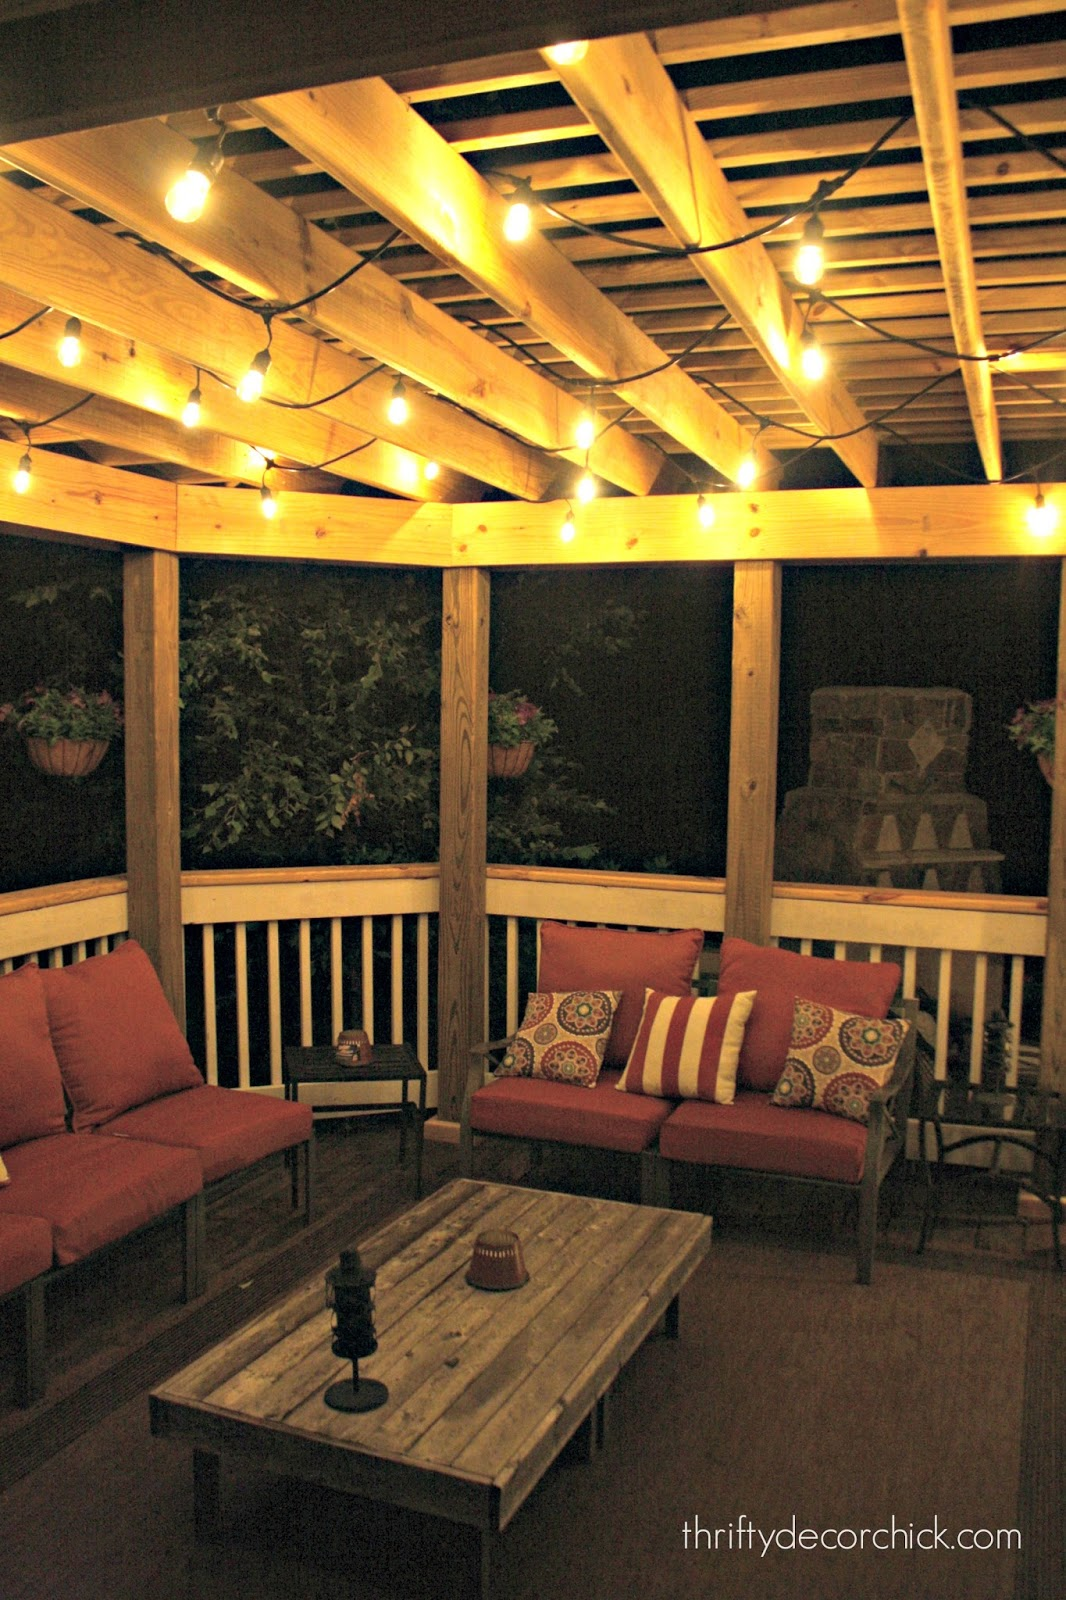 best outdoor lights pergola - The BEST Outdoor Lights From Thrifty Decor Chick